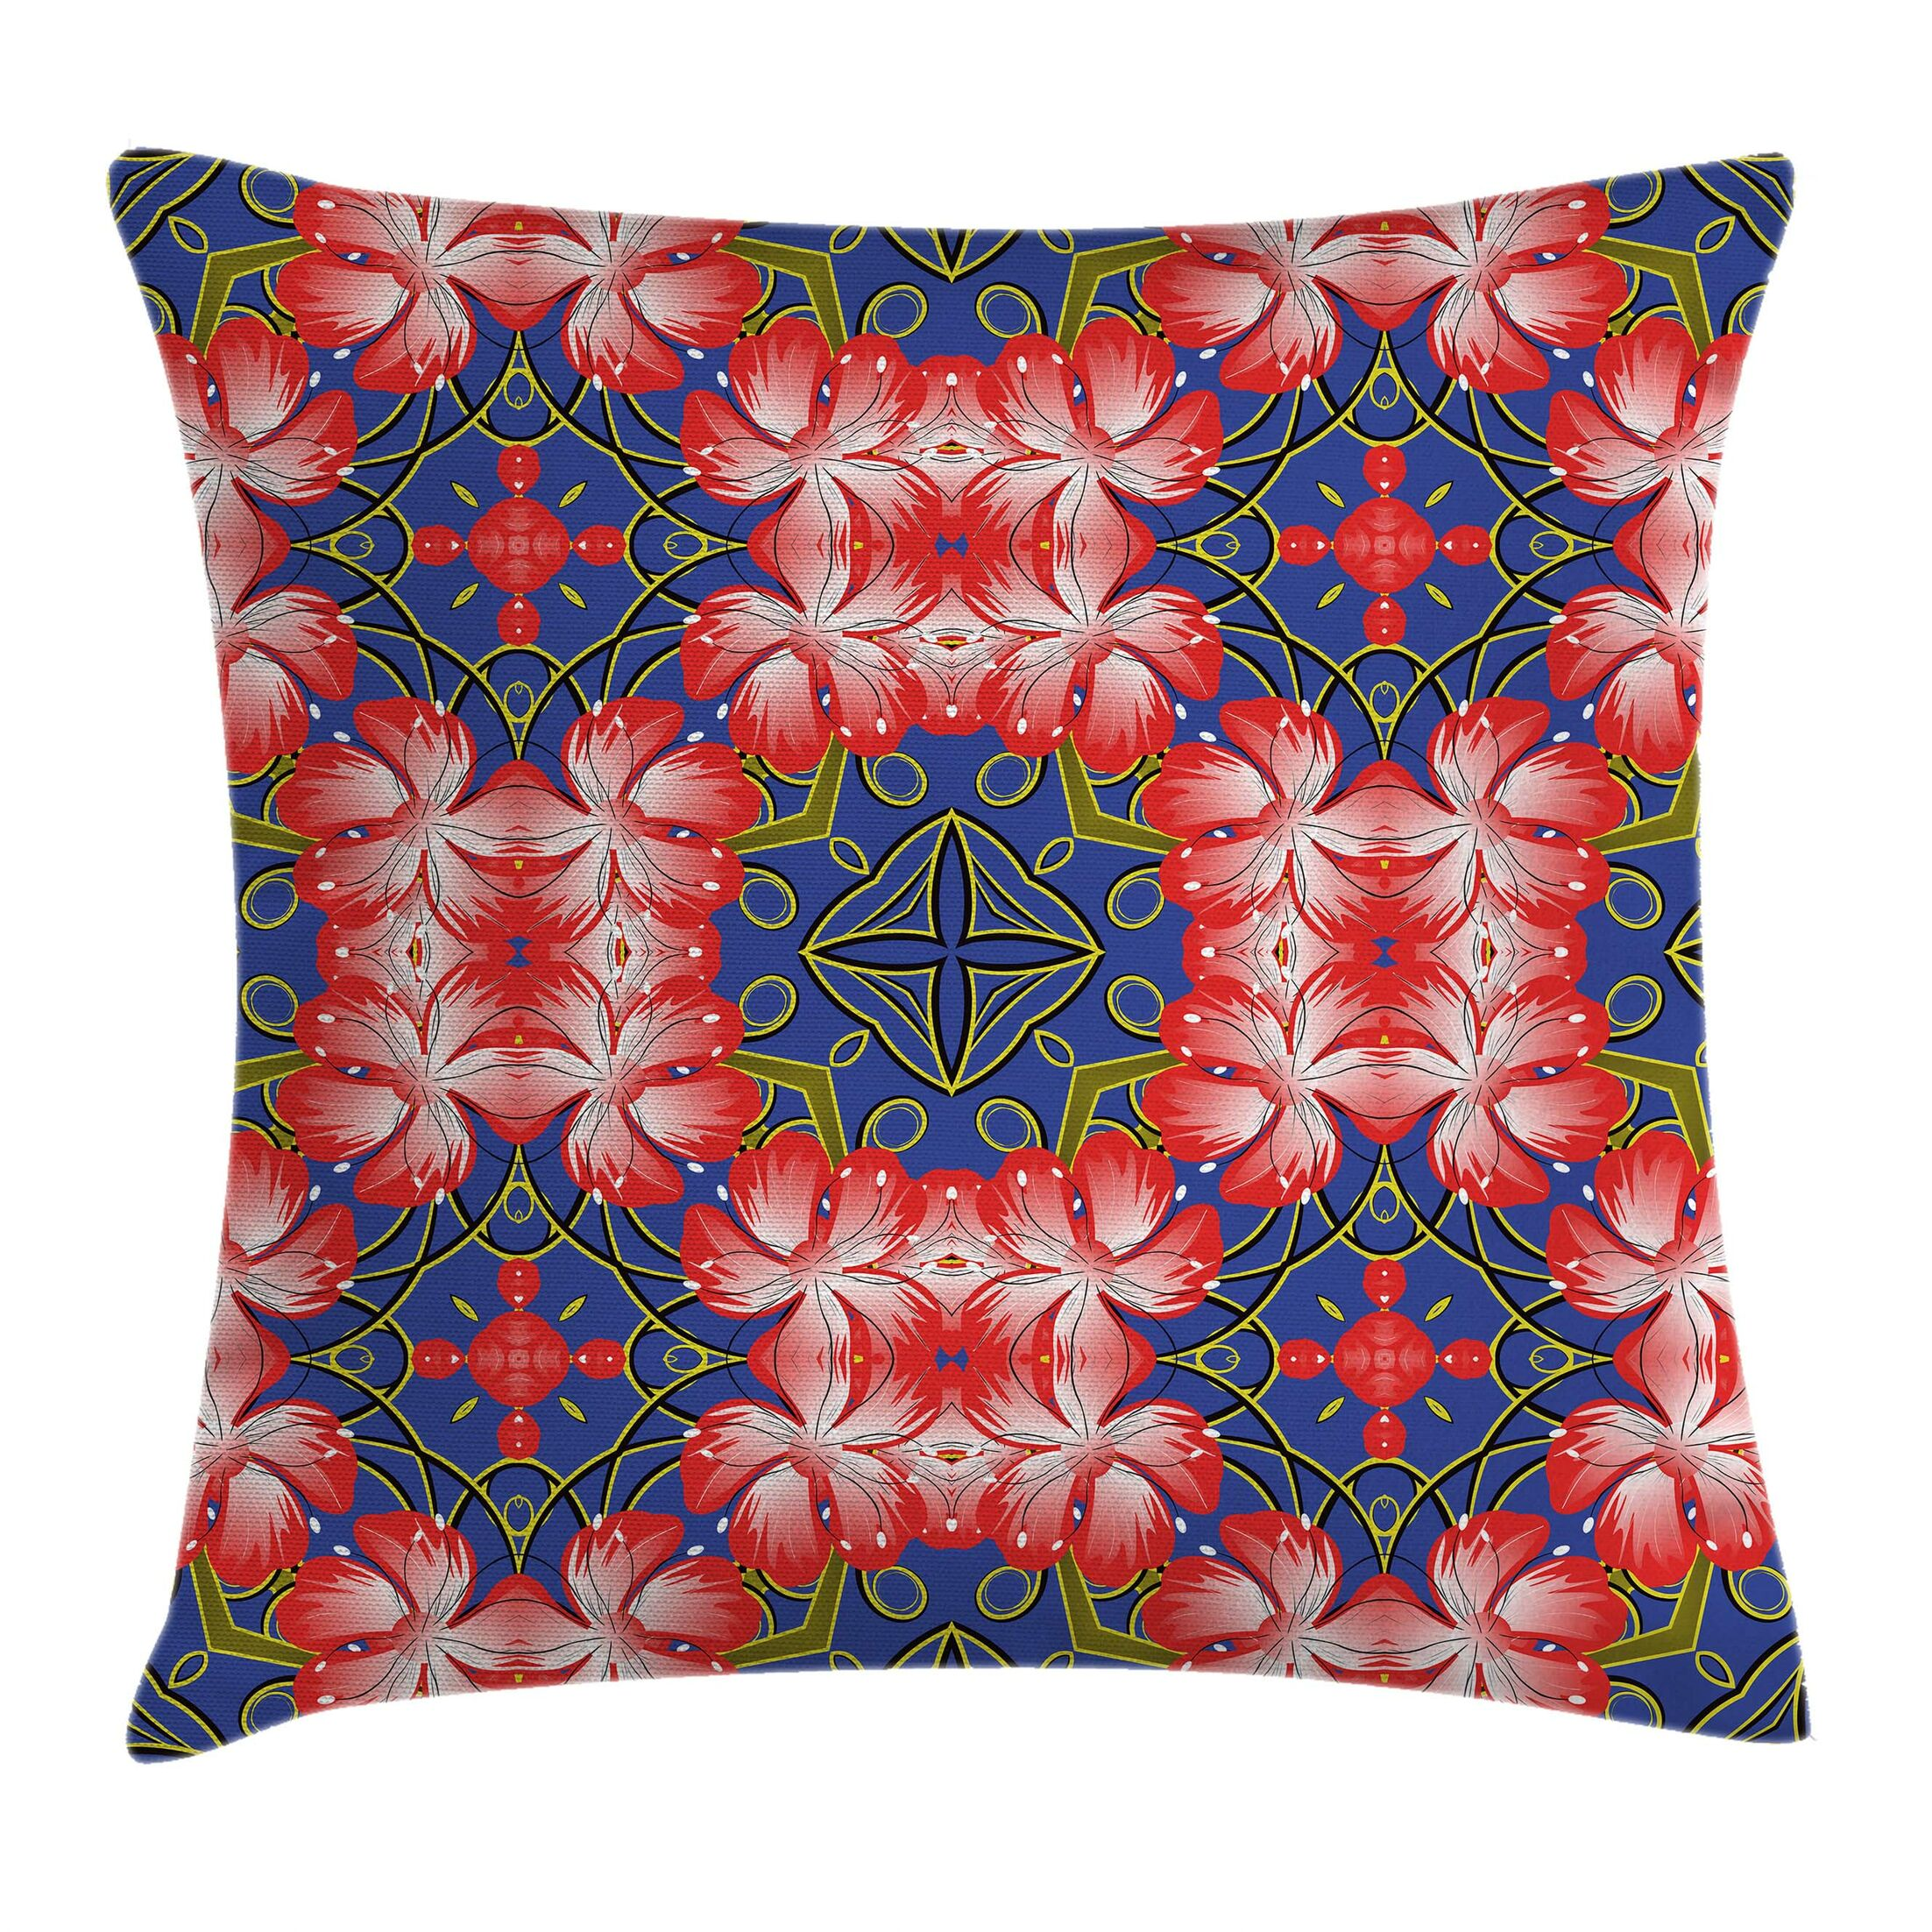 Floral Blossoms Bands Vibrant Pillow Cover Size: 16